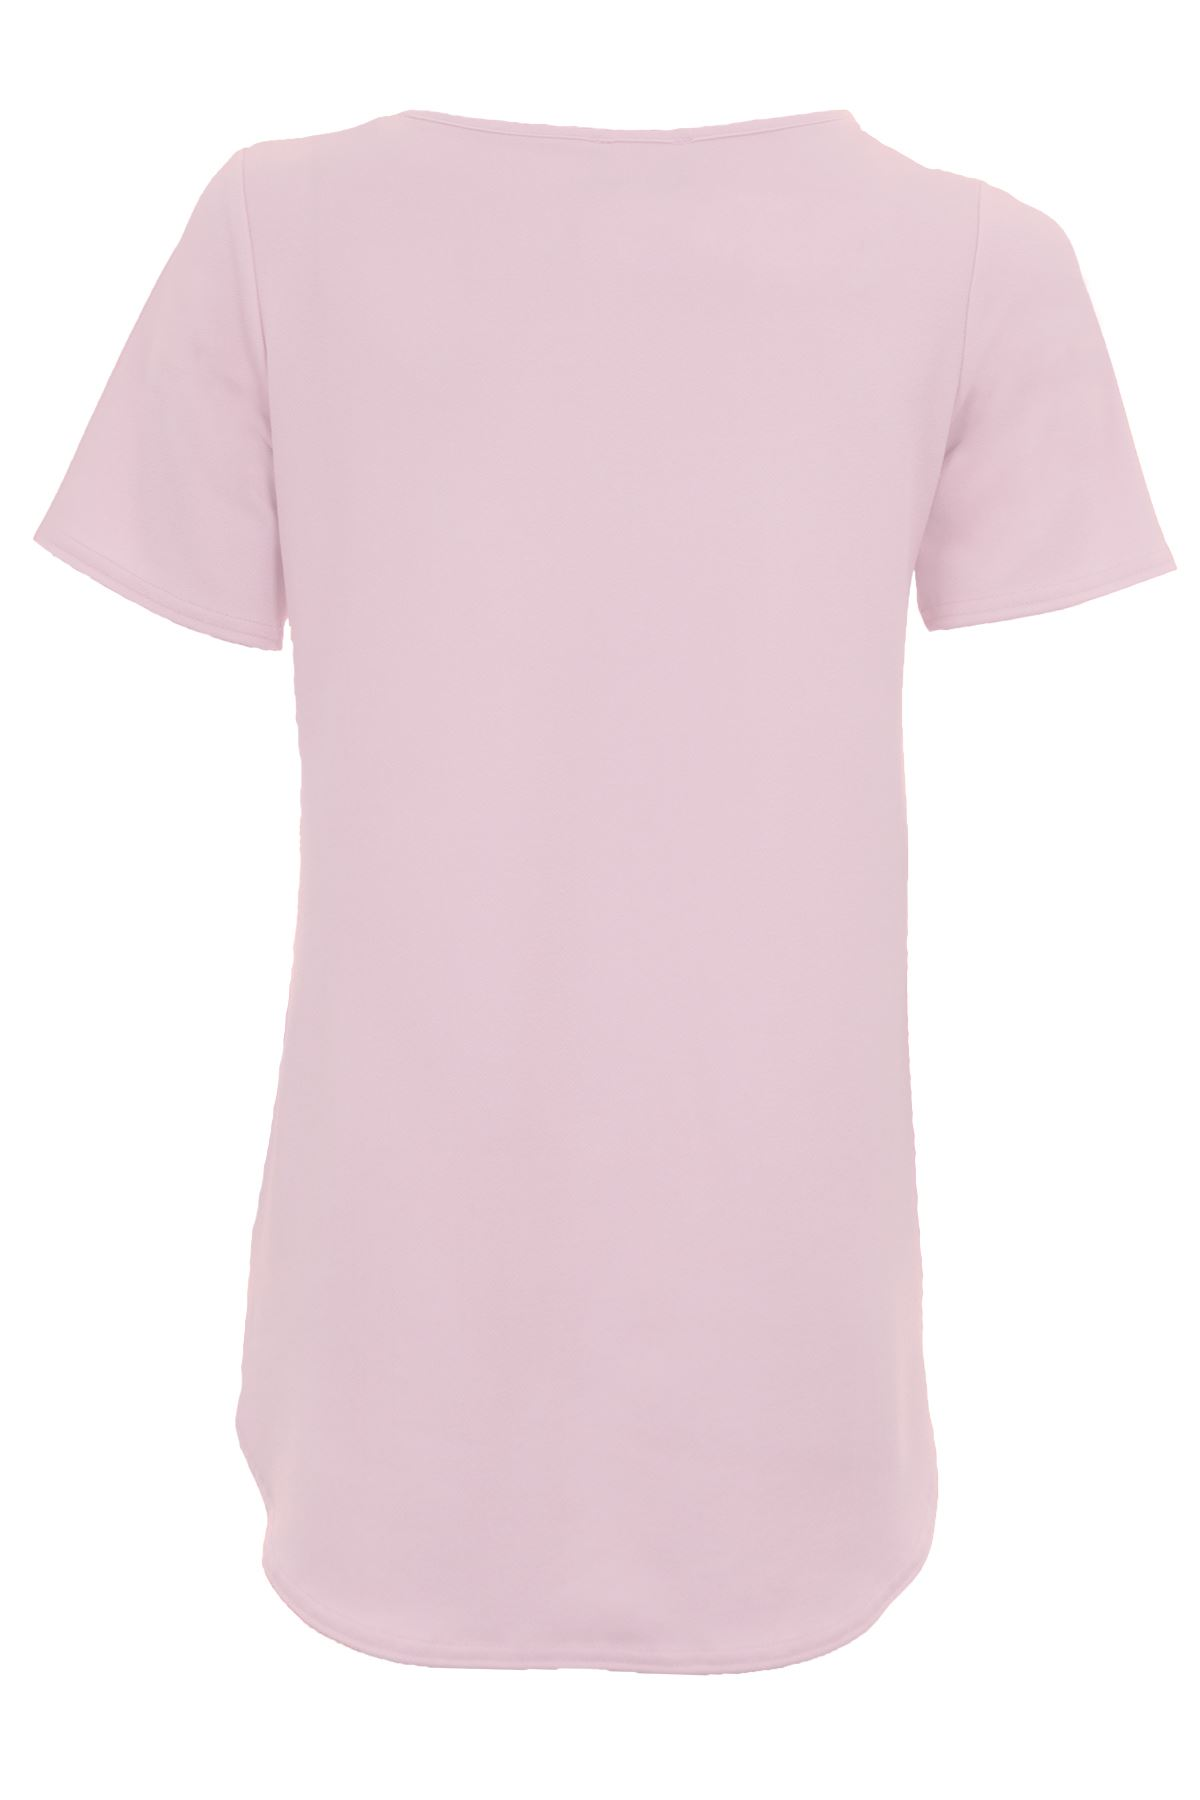 Ladies-Short-Sleeve-Crepe-Textured-Oversized-Women-039-s-High-Low-T-Shirt-Top thumbnail 13